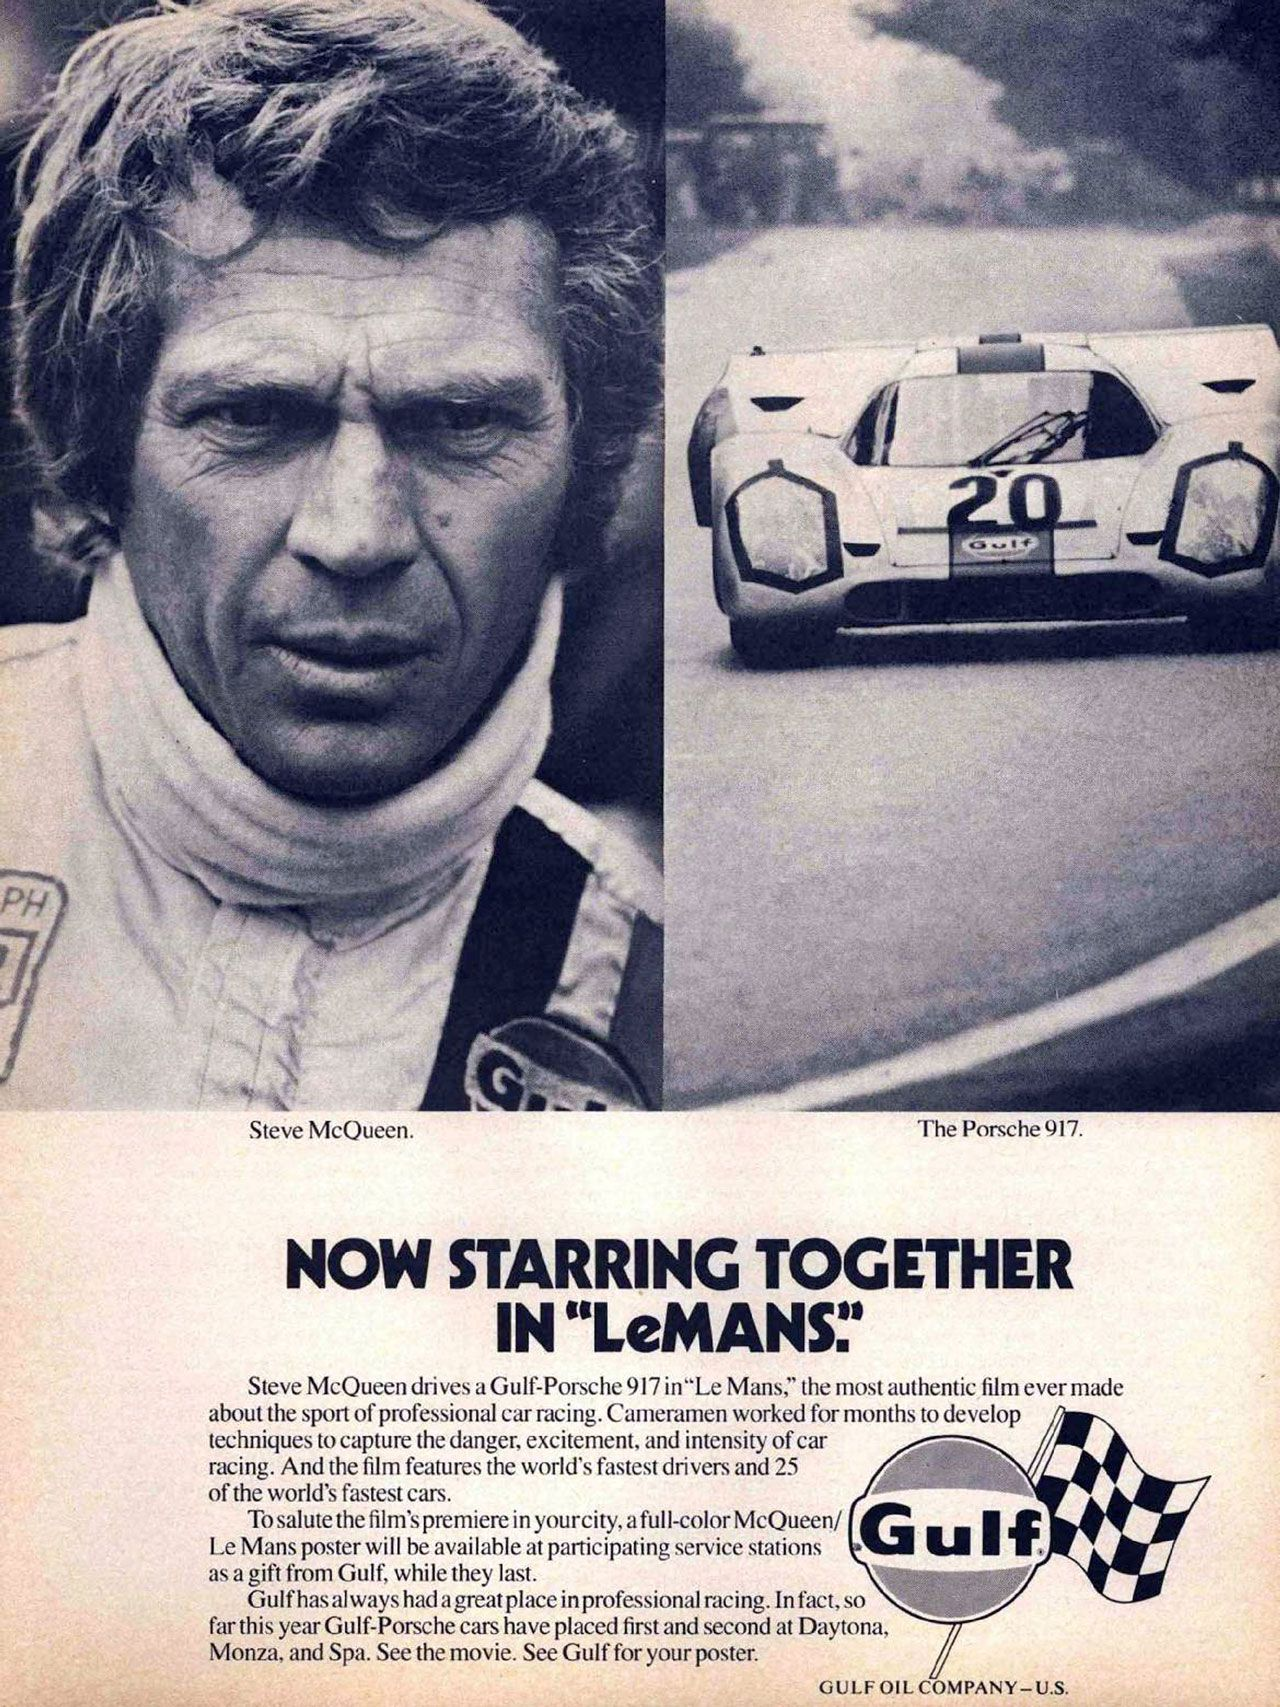 Steve McQueen. The Porsche 917. Now starring together in 'Le Mans'. Steve McQueen drives a Gulf-Porsche 917 in 'Le Mans,' the most authentic film ever made about the sport of professional car racing. Cameramen worked for months to develop techniques to capture the danger, excitement, and intensity of car racing. And the film features the world's fastest drivers and 25 of the world's fastest cars. To salute the film's premiere in yourcity, a full-color McQueen/ Le Mans poster will be available at participating service stations as a gift from Gulf, while they last. Gulf has always had a great place inprofessional racing. In fact, so far this year Gulf-Porsche cars have placed first and second at Daytona, Monza, and Spa. See the movie. See Gulf for your poster.